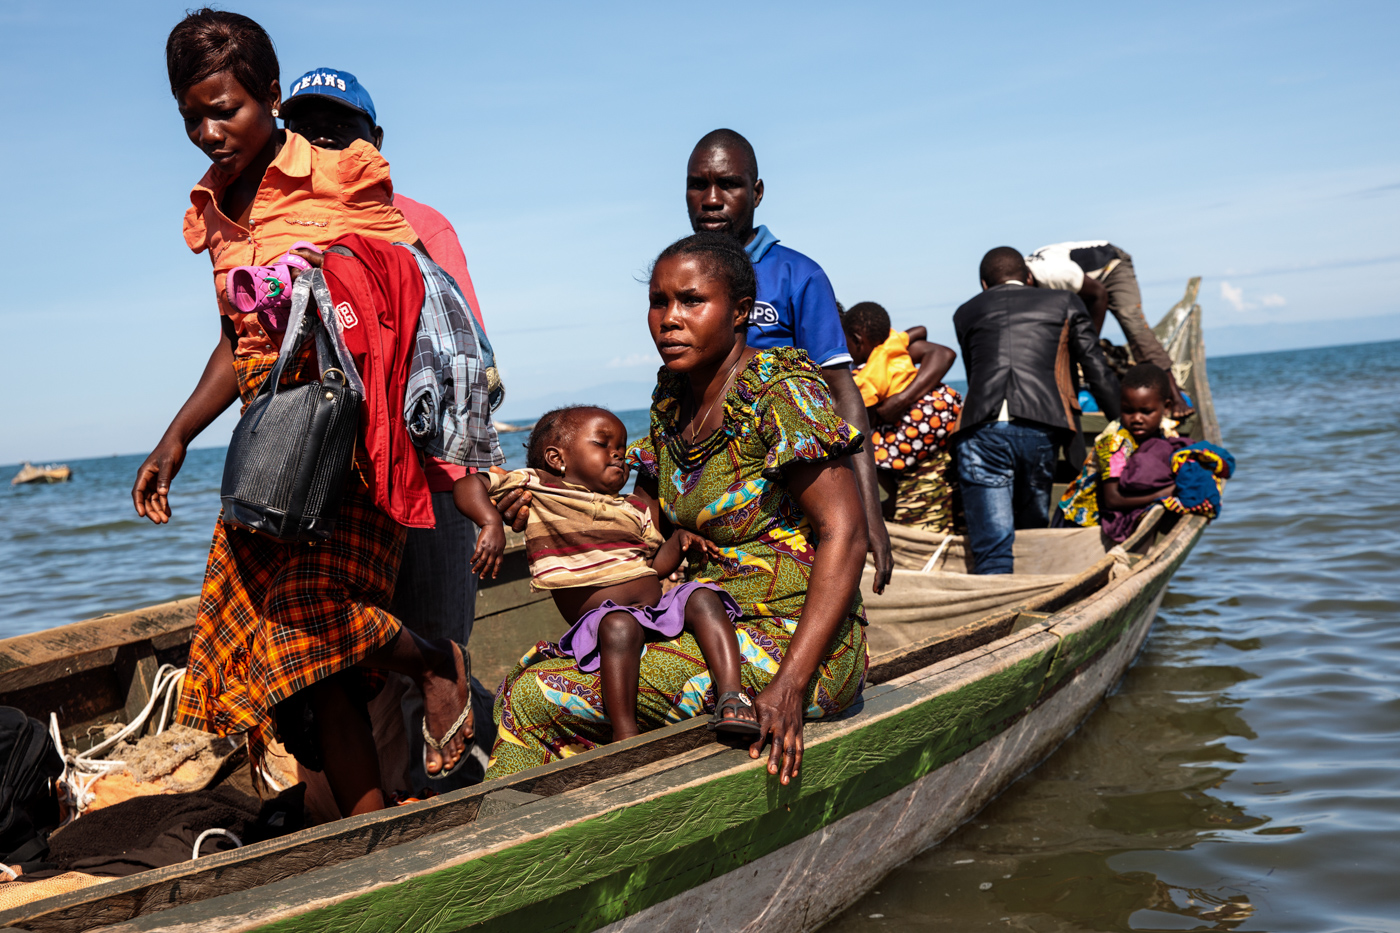 NSONGA, UGANDA: Refugees from Tchomia in the Democratic Republic of Congo arrive on boat at the Nsonga landing site on April 10, 2018.